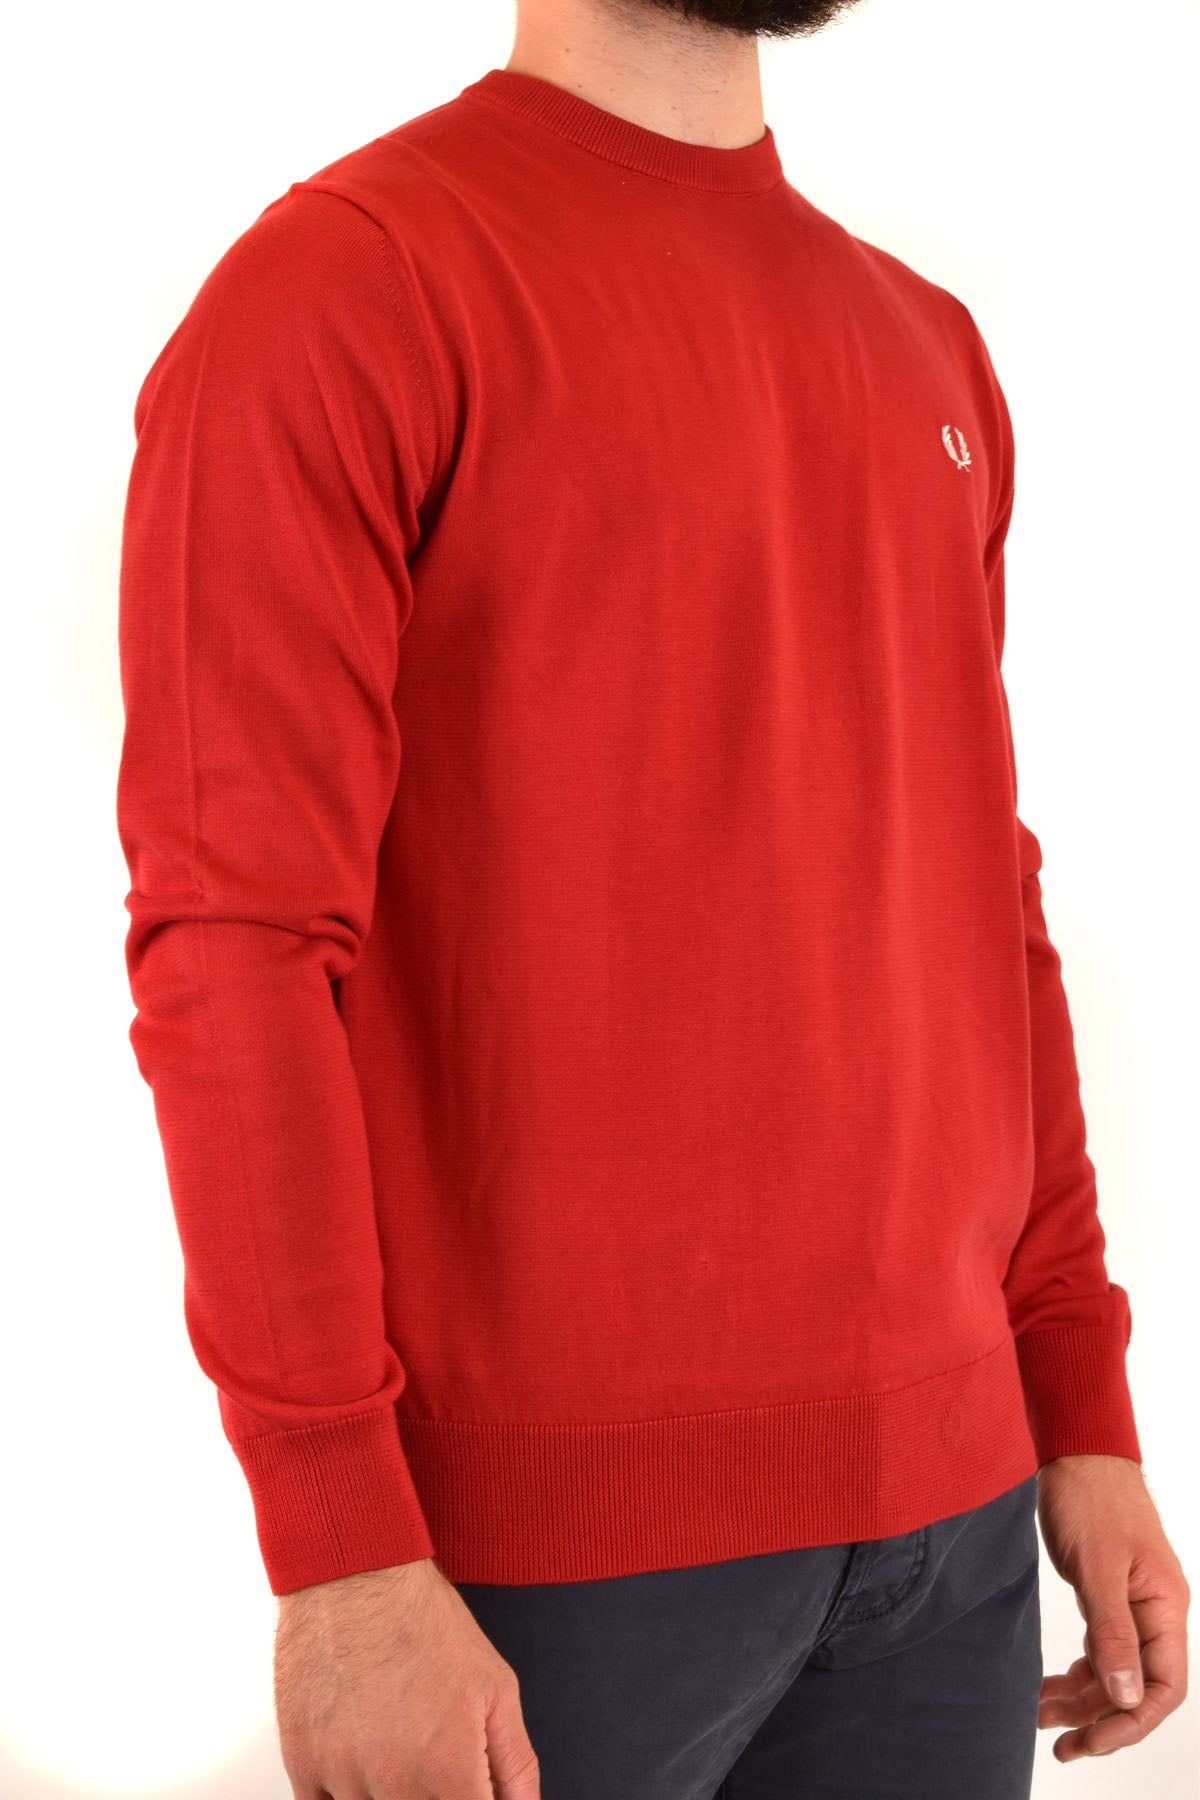 Sweater Fred Perry-Men's Fashion - Men's Clothing - Hoodies & Sweatshirts-Product Details Manufacturer Part Number: K5523 Col 401Year: 2020Composition: Cotton 100%Size: IntGender: ManMade In: ChinaSeason: Fall / WinterMain Color: RedClothing Type: Sweater Terms: New With Label-Keyomi-Sook